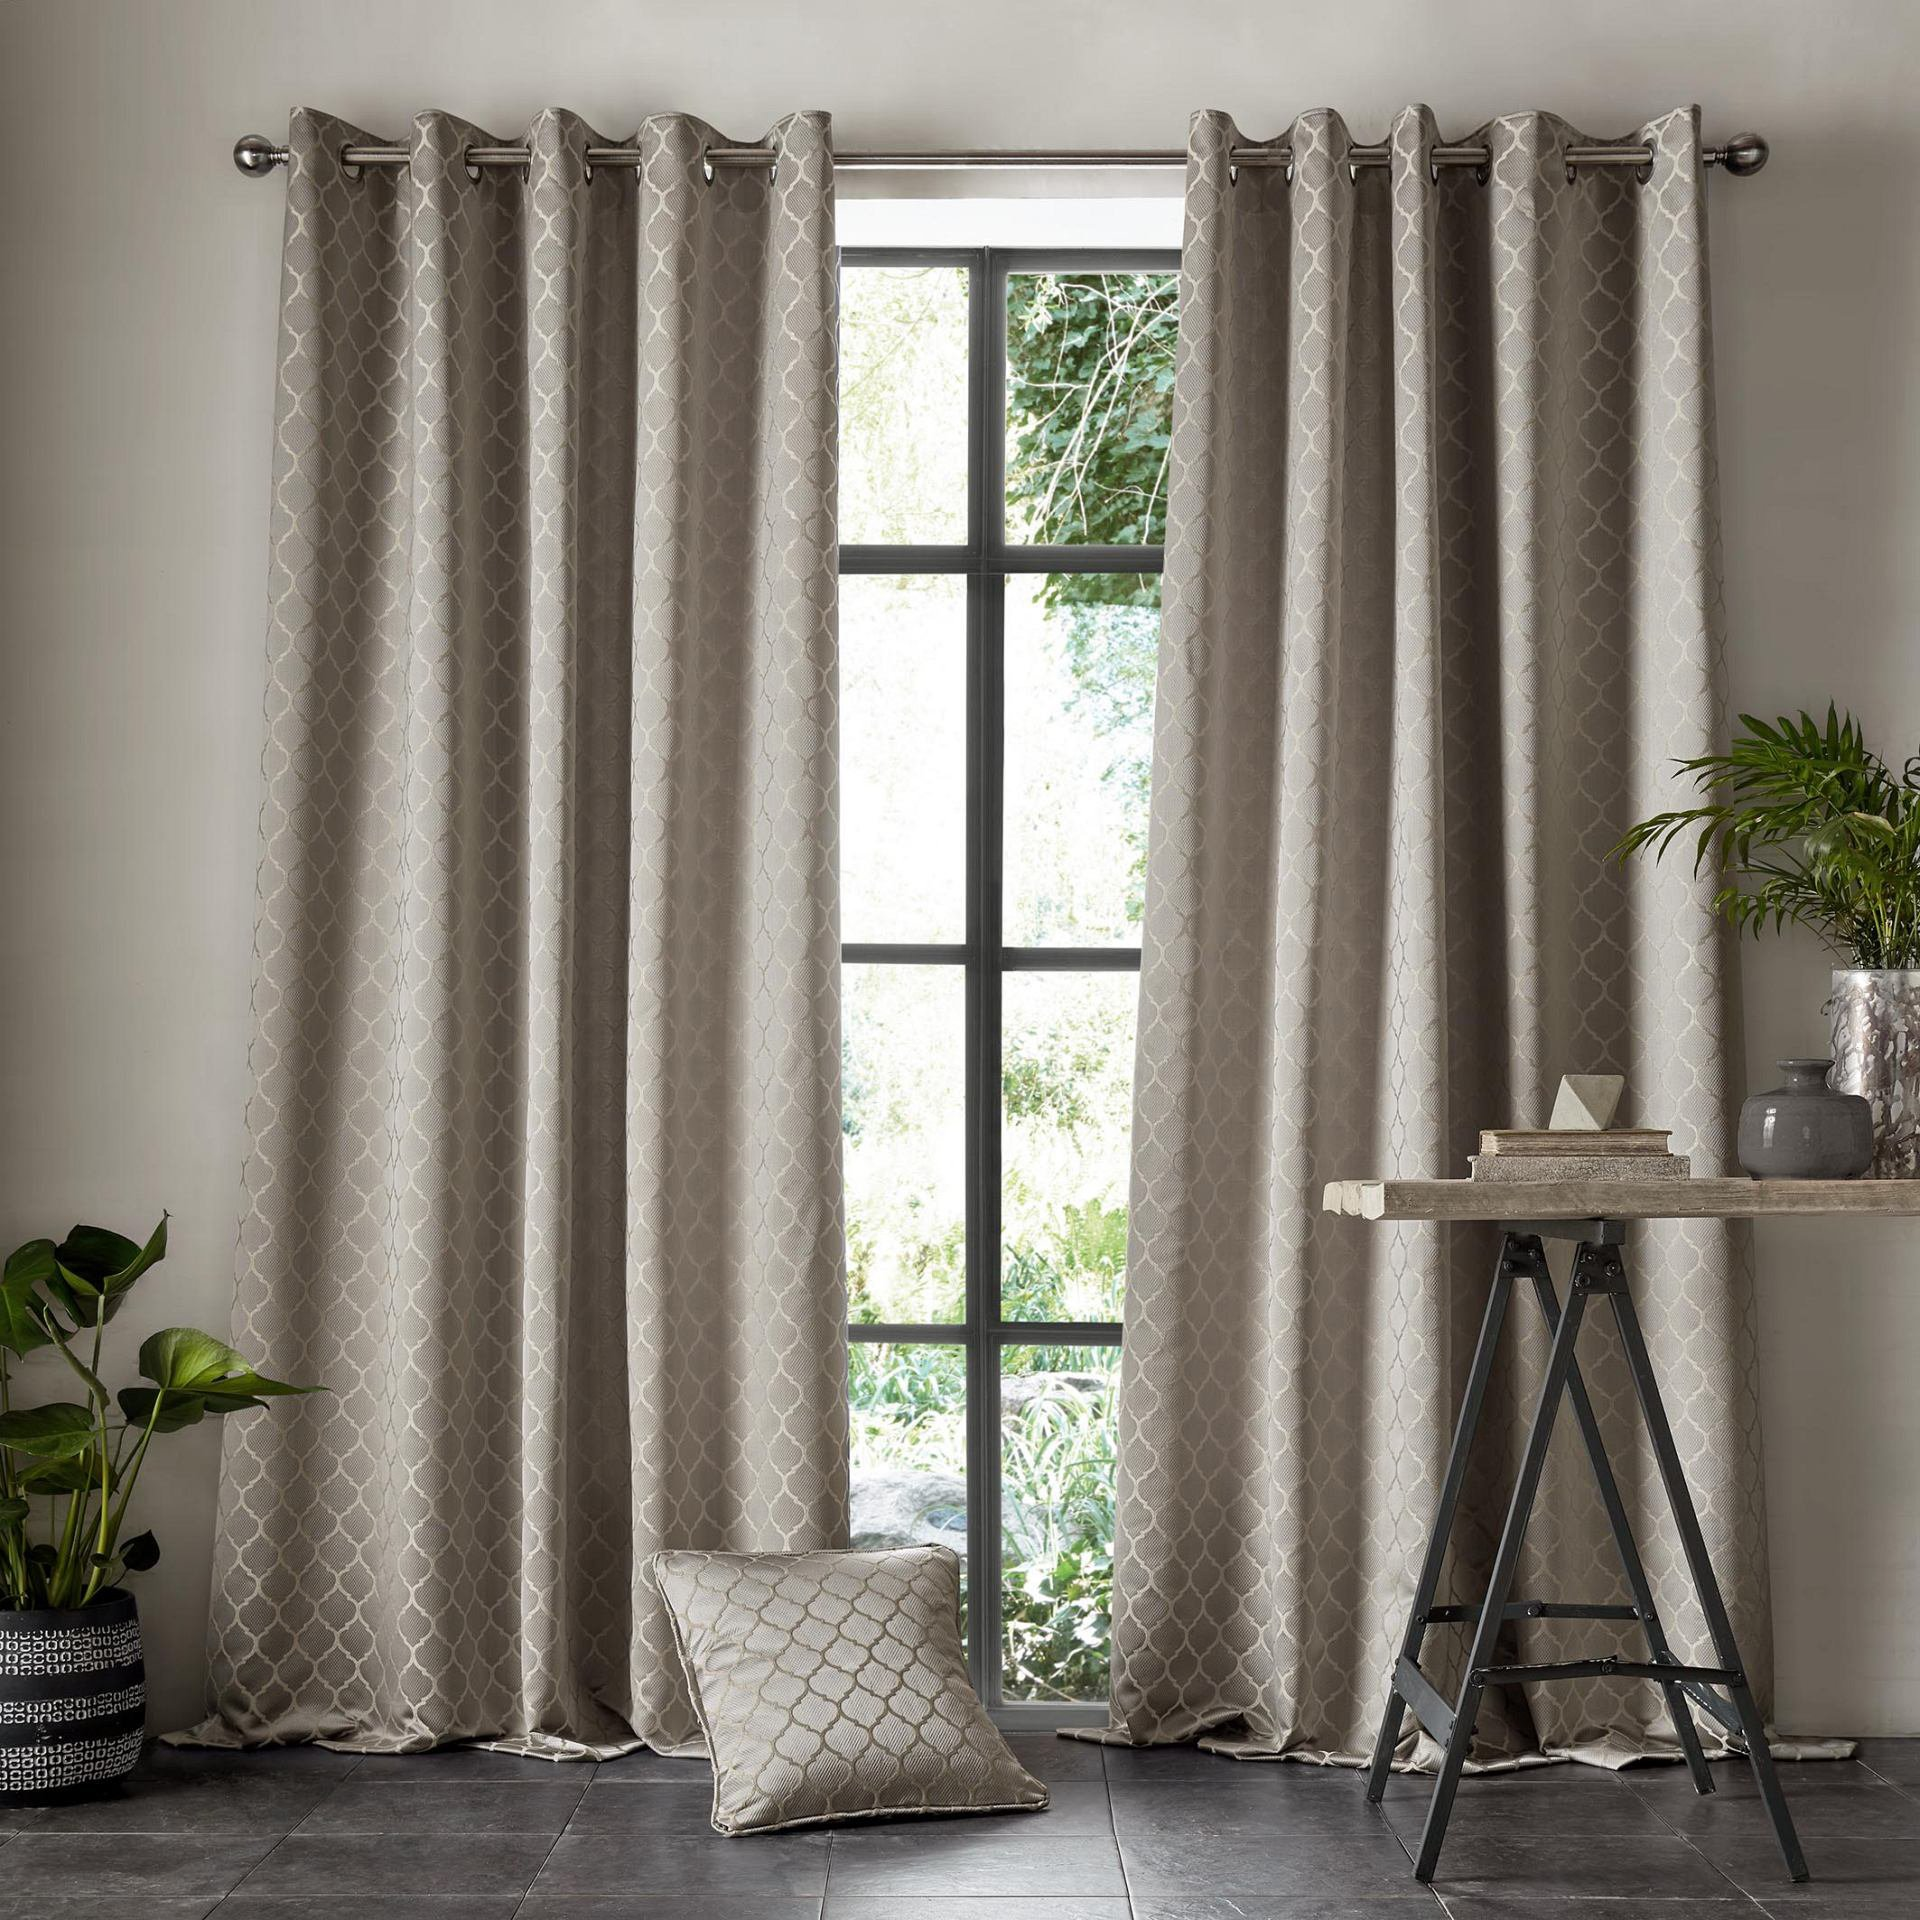 Village-fabrics-Curtains-Aldbury-Pewter